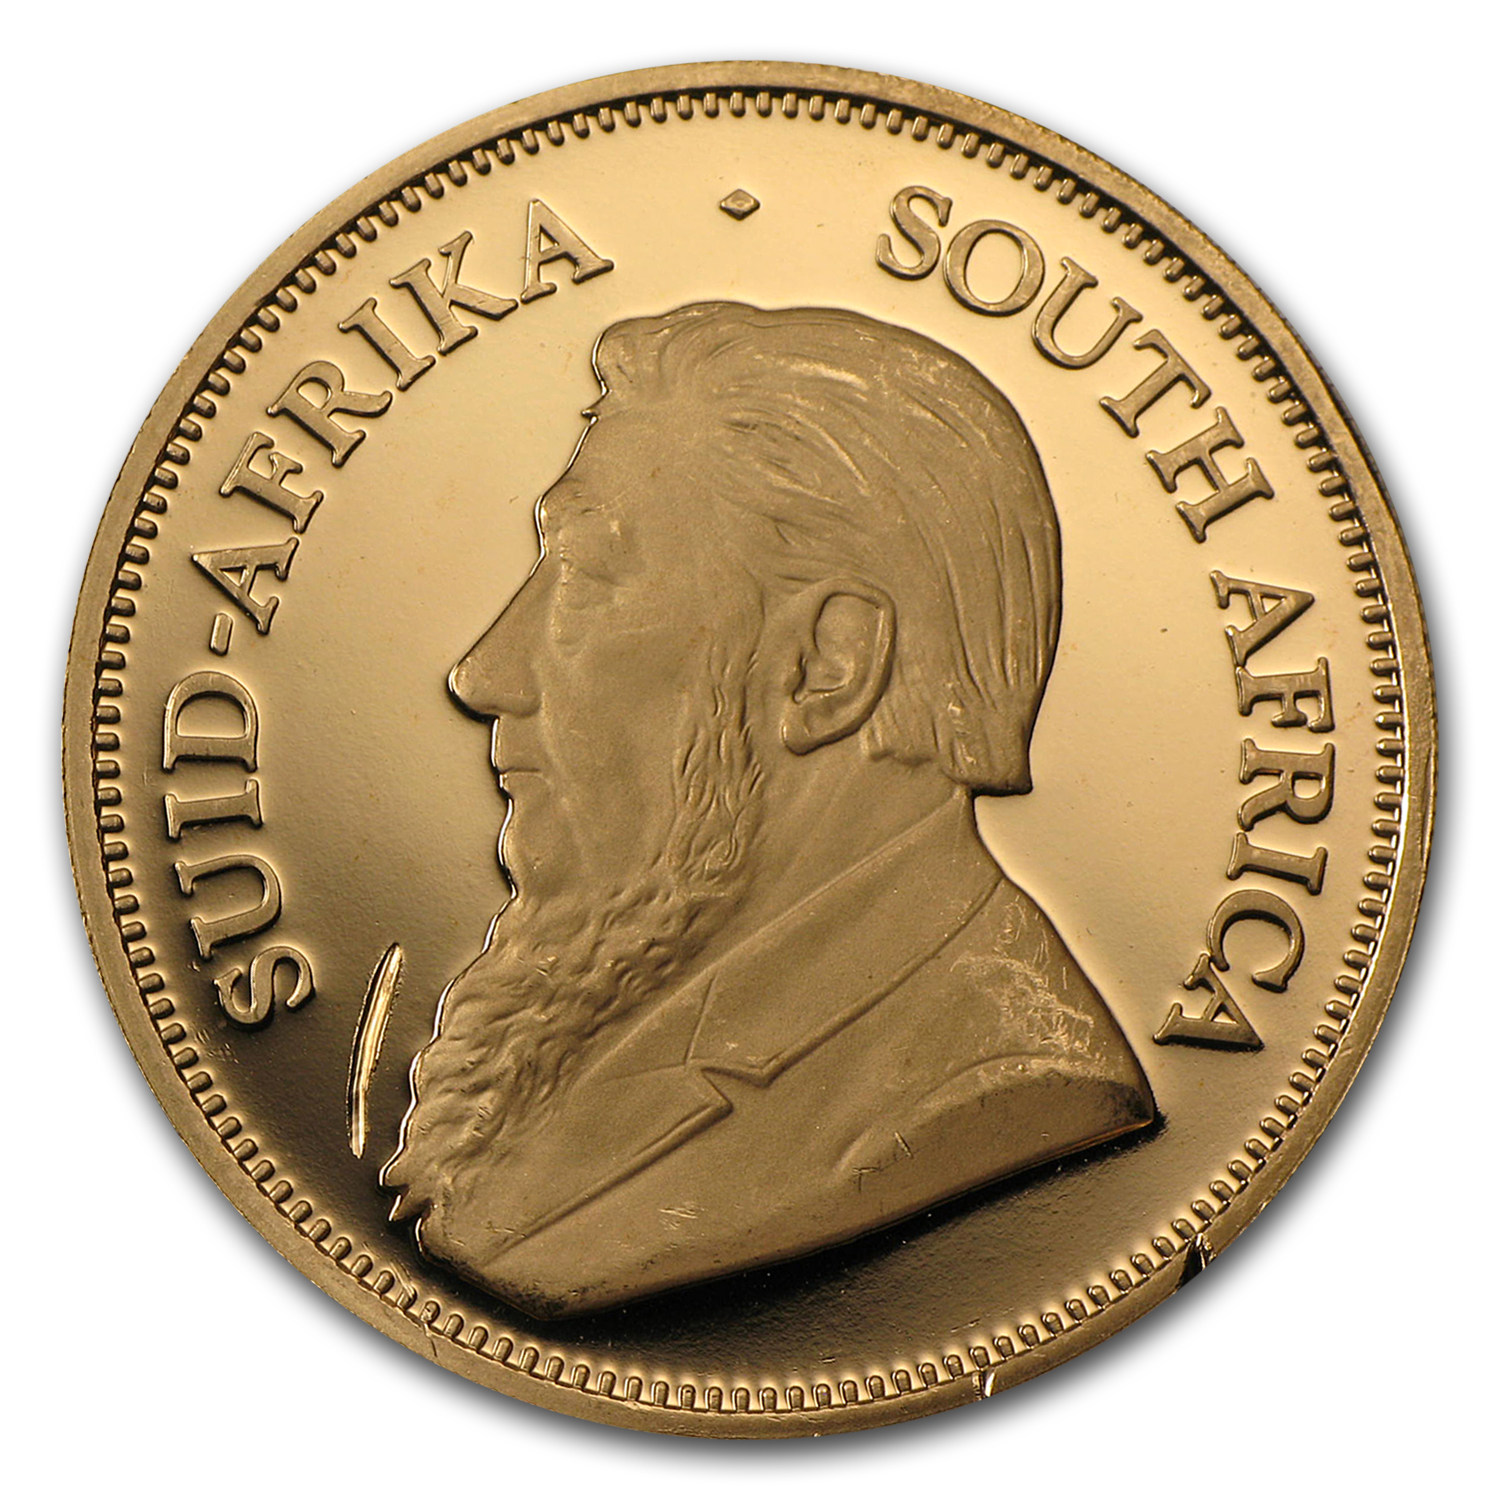 2005 South Africa 1 oz Proof Gold Krugerrand